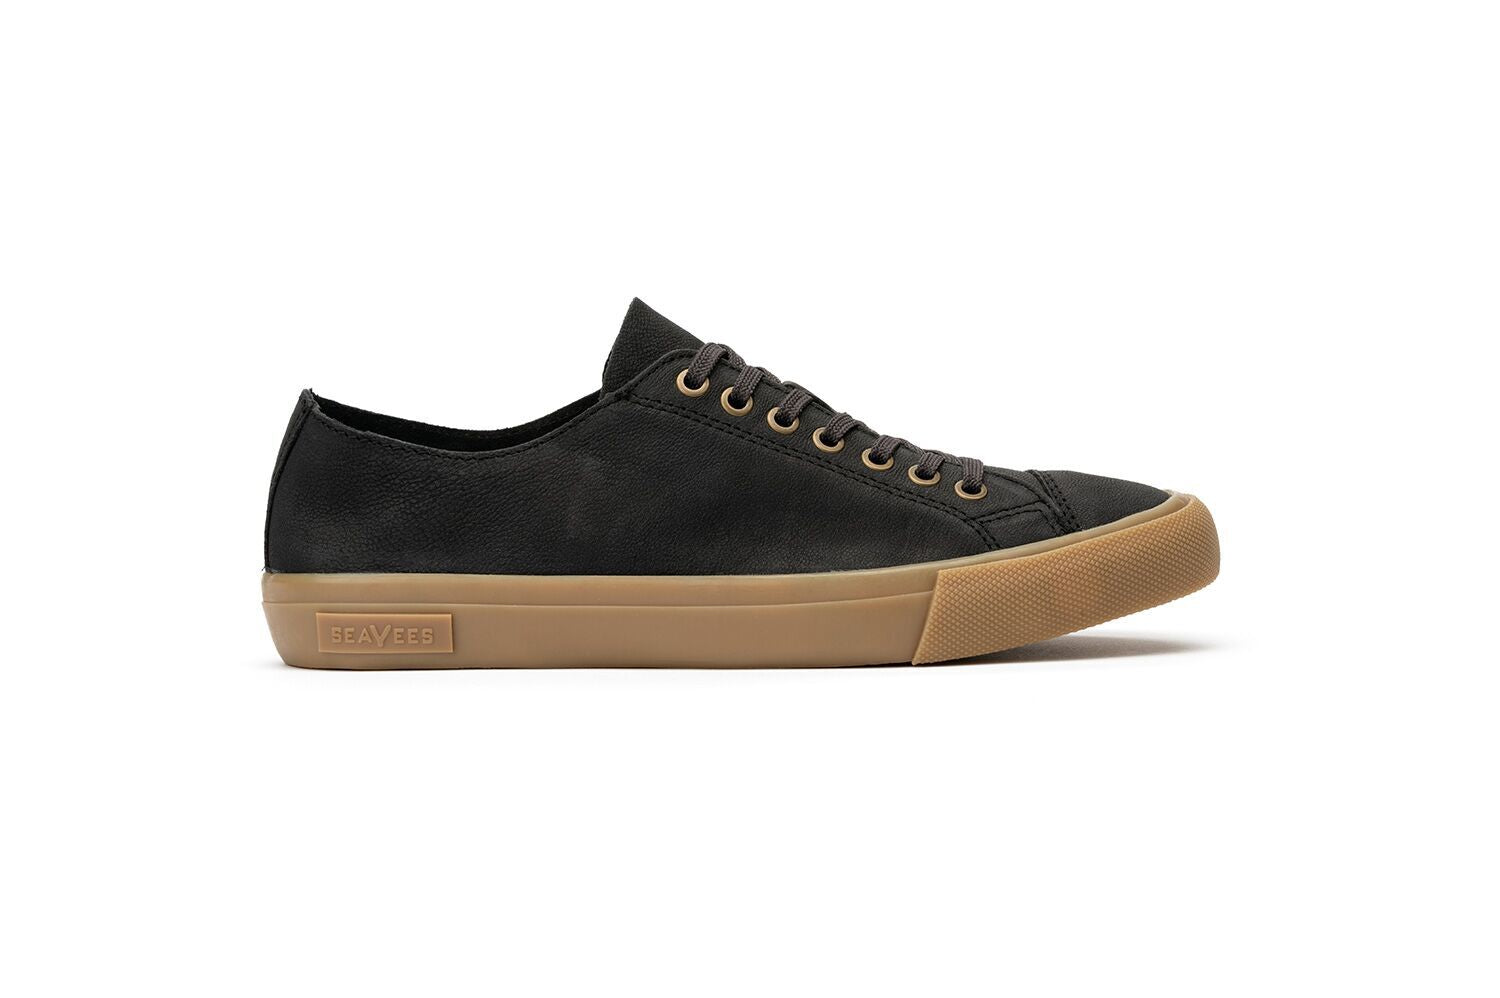 SeaVees Army Issue Low Burnished